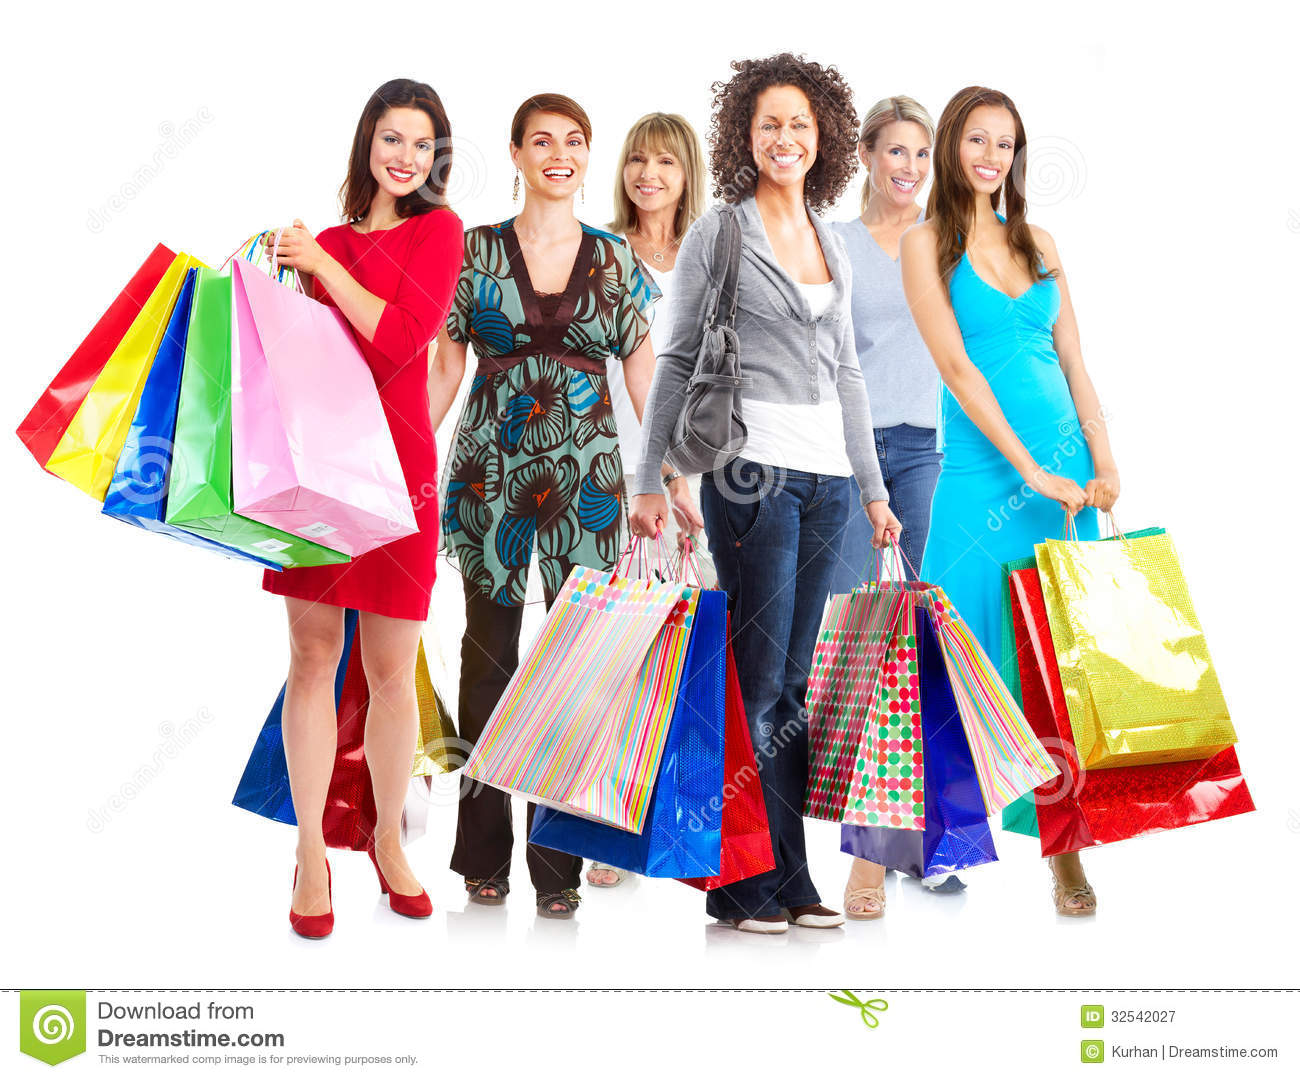 Shopping habits of African-Americans revealed by Nielsen research